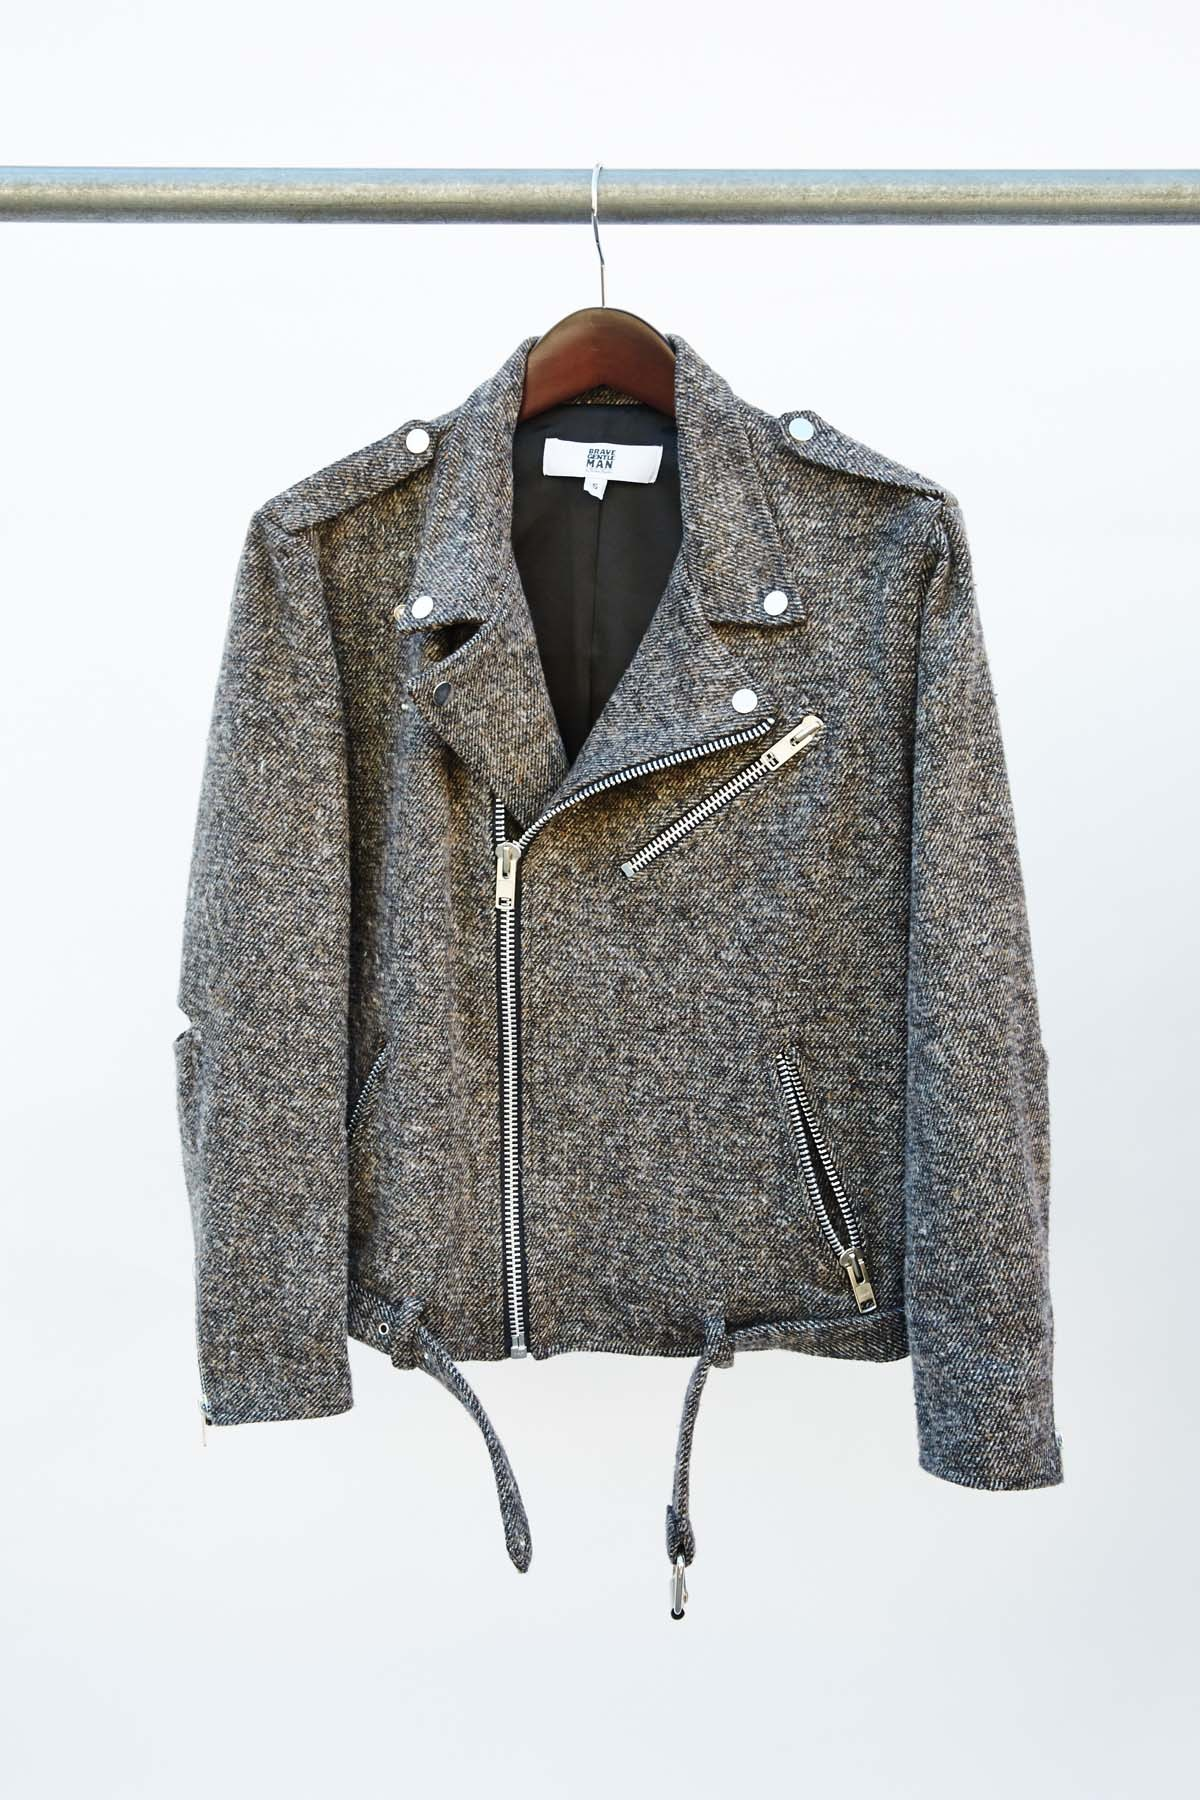 TWEED MOTO JACKET- BROWN $630.00